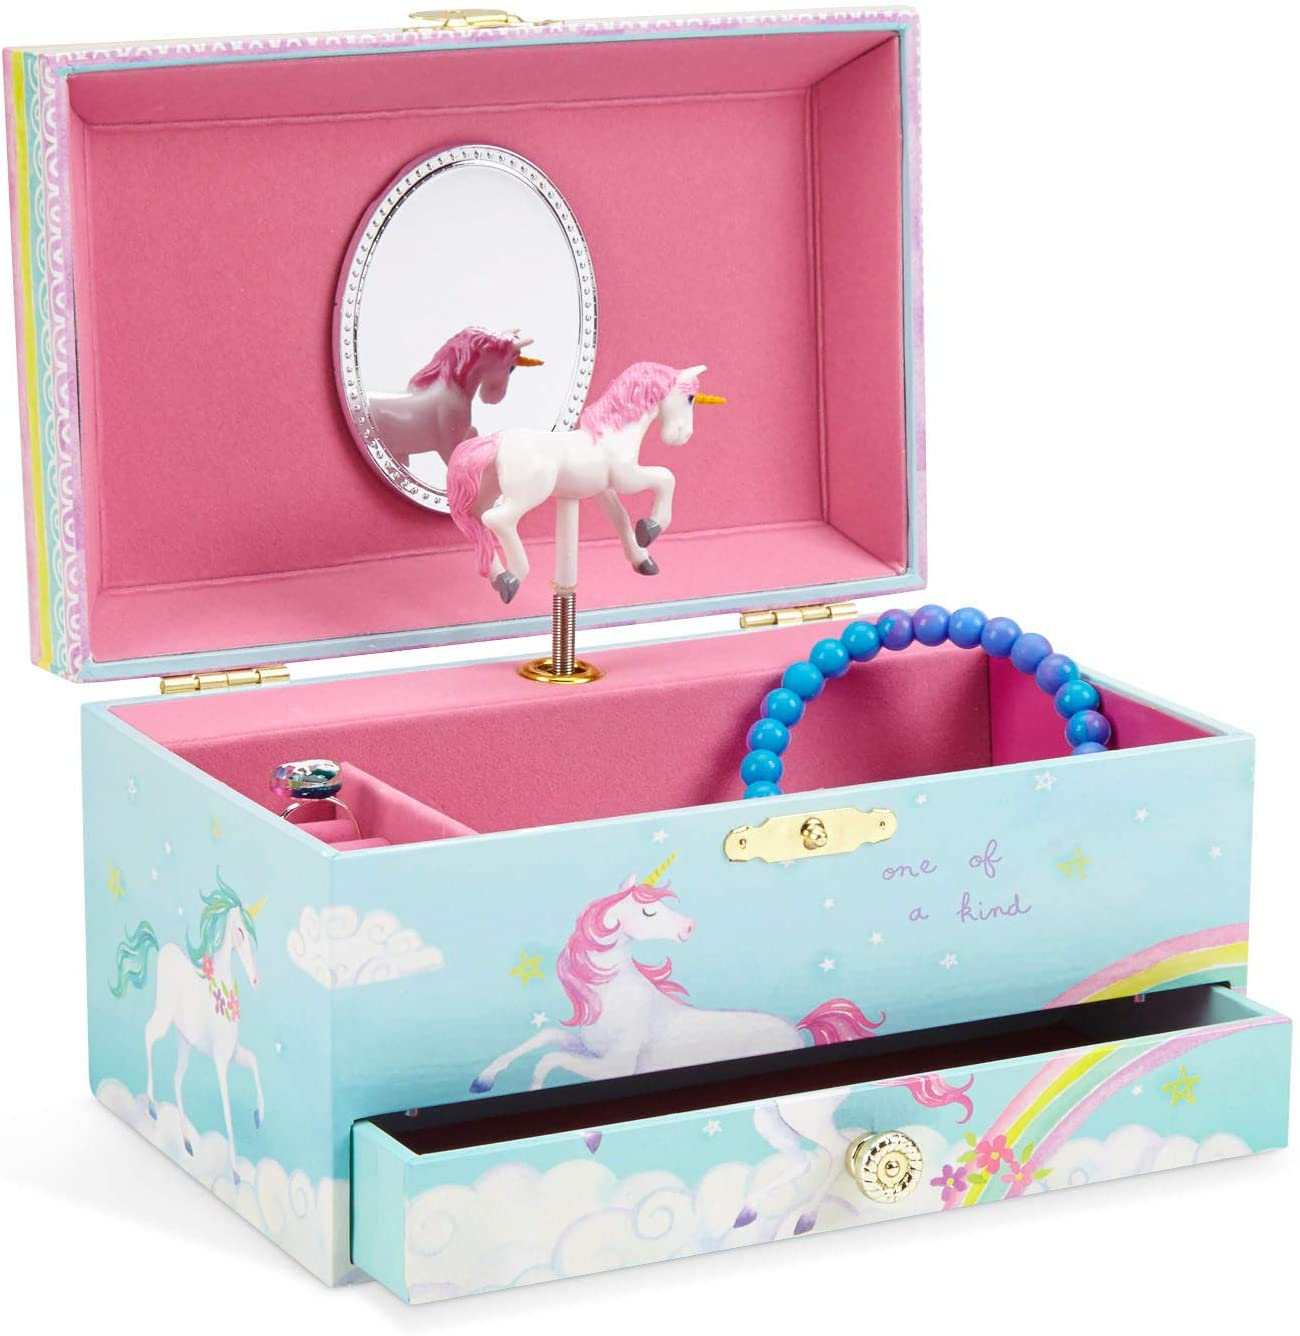 unique set of surprise jewelry box for mechanic Tool themed mystery earrings box gift girl women discounted up to 40/% off racing diy